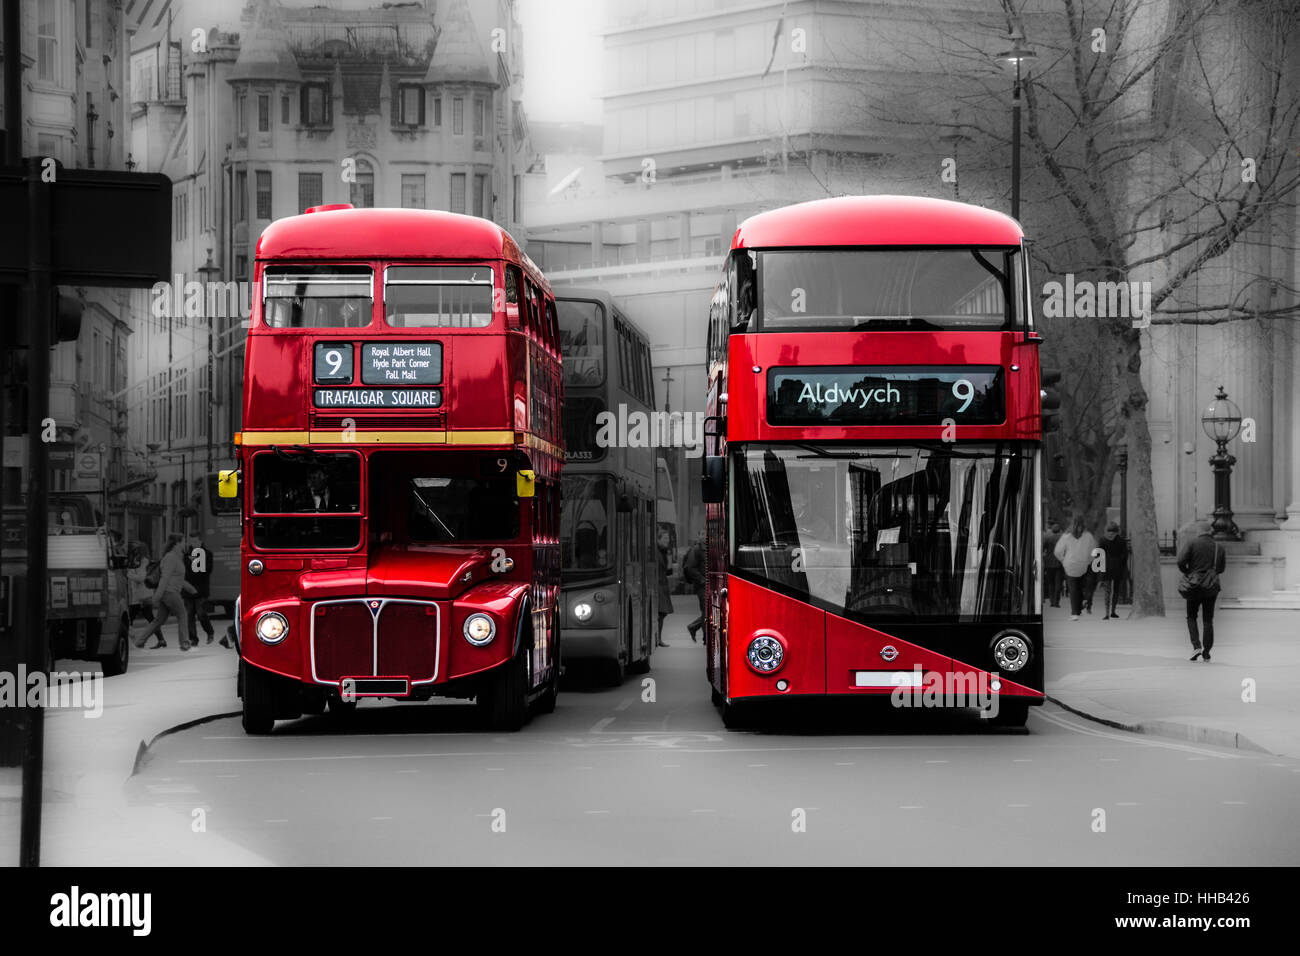 London, UK. Old & new London red buses stop side by side at a traffic light in Trafalgar Square, London - Stock Image